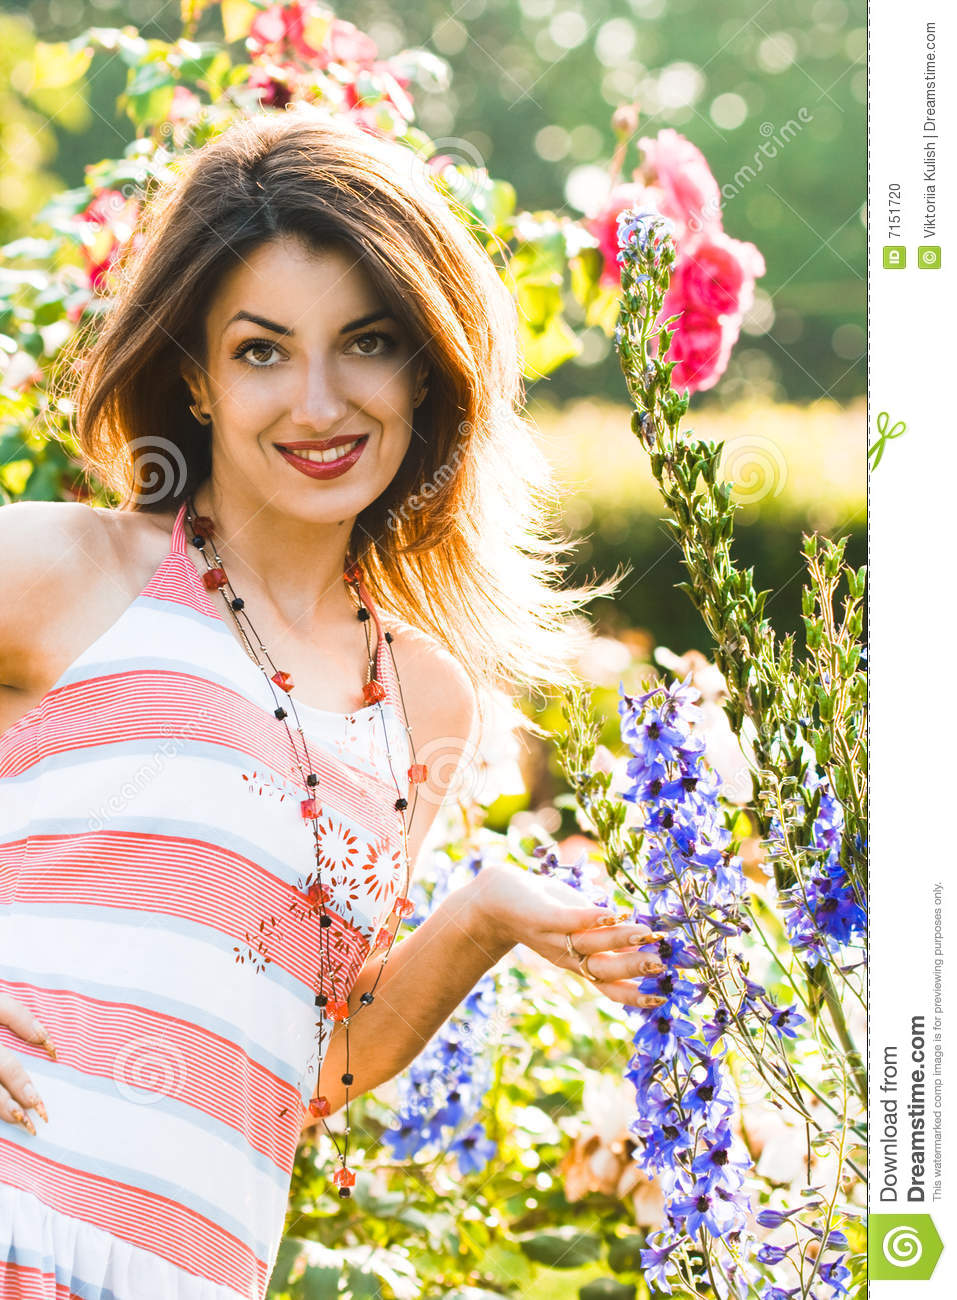 Beautiful girl in spring garden among the blooming trees